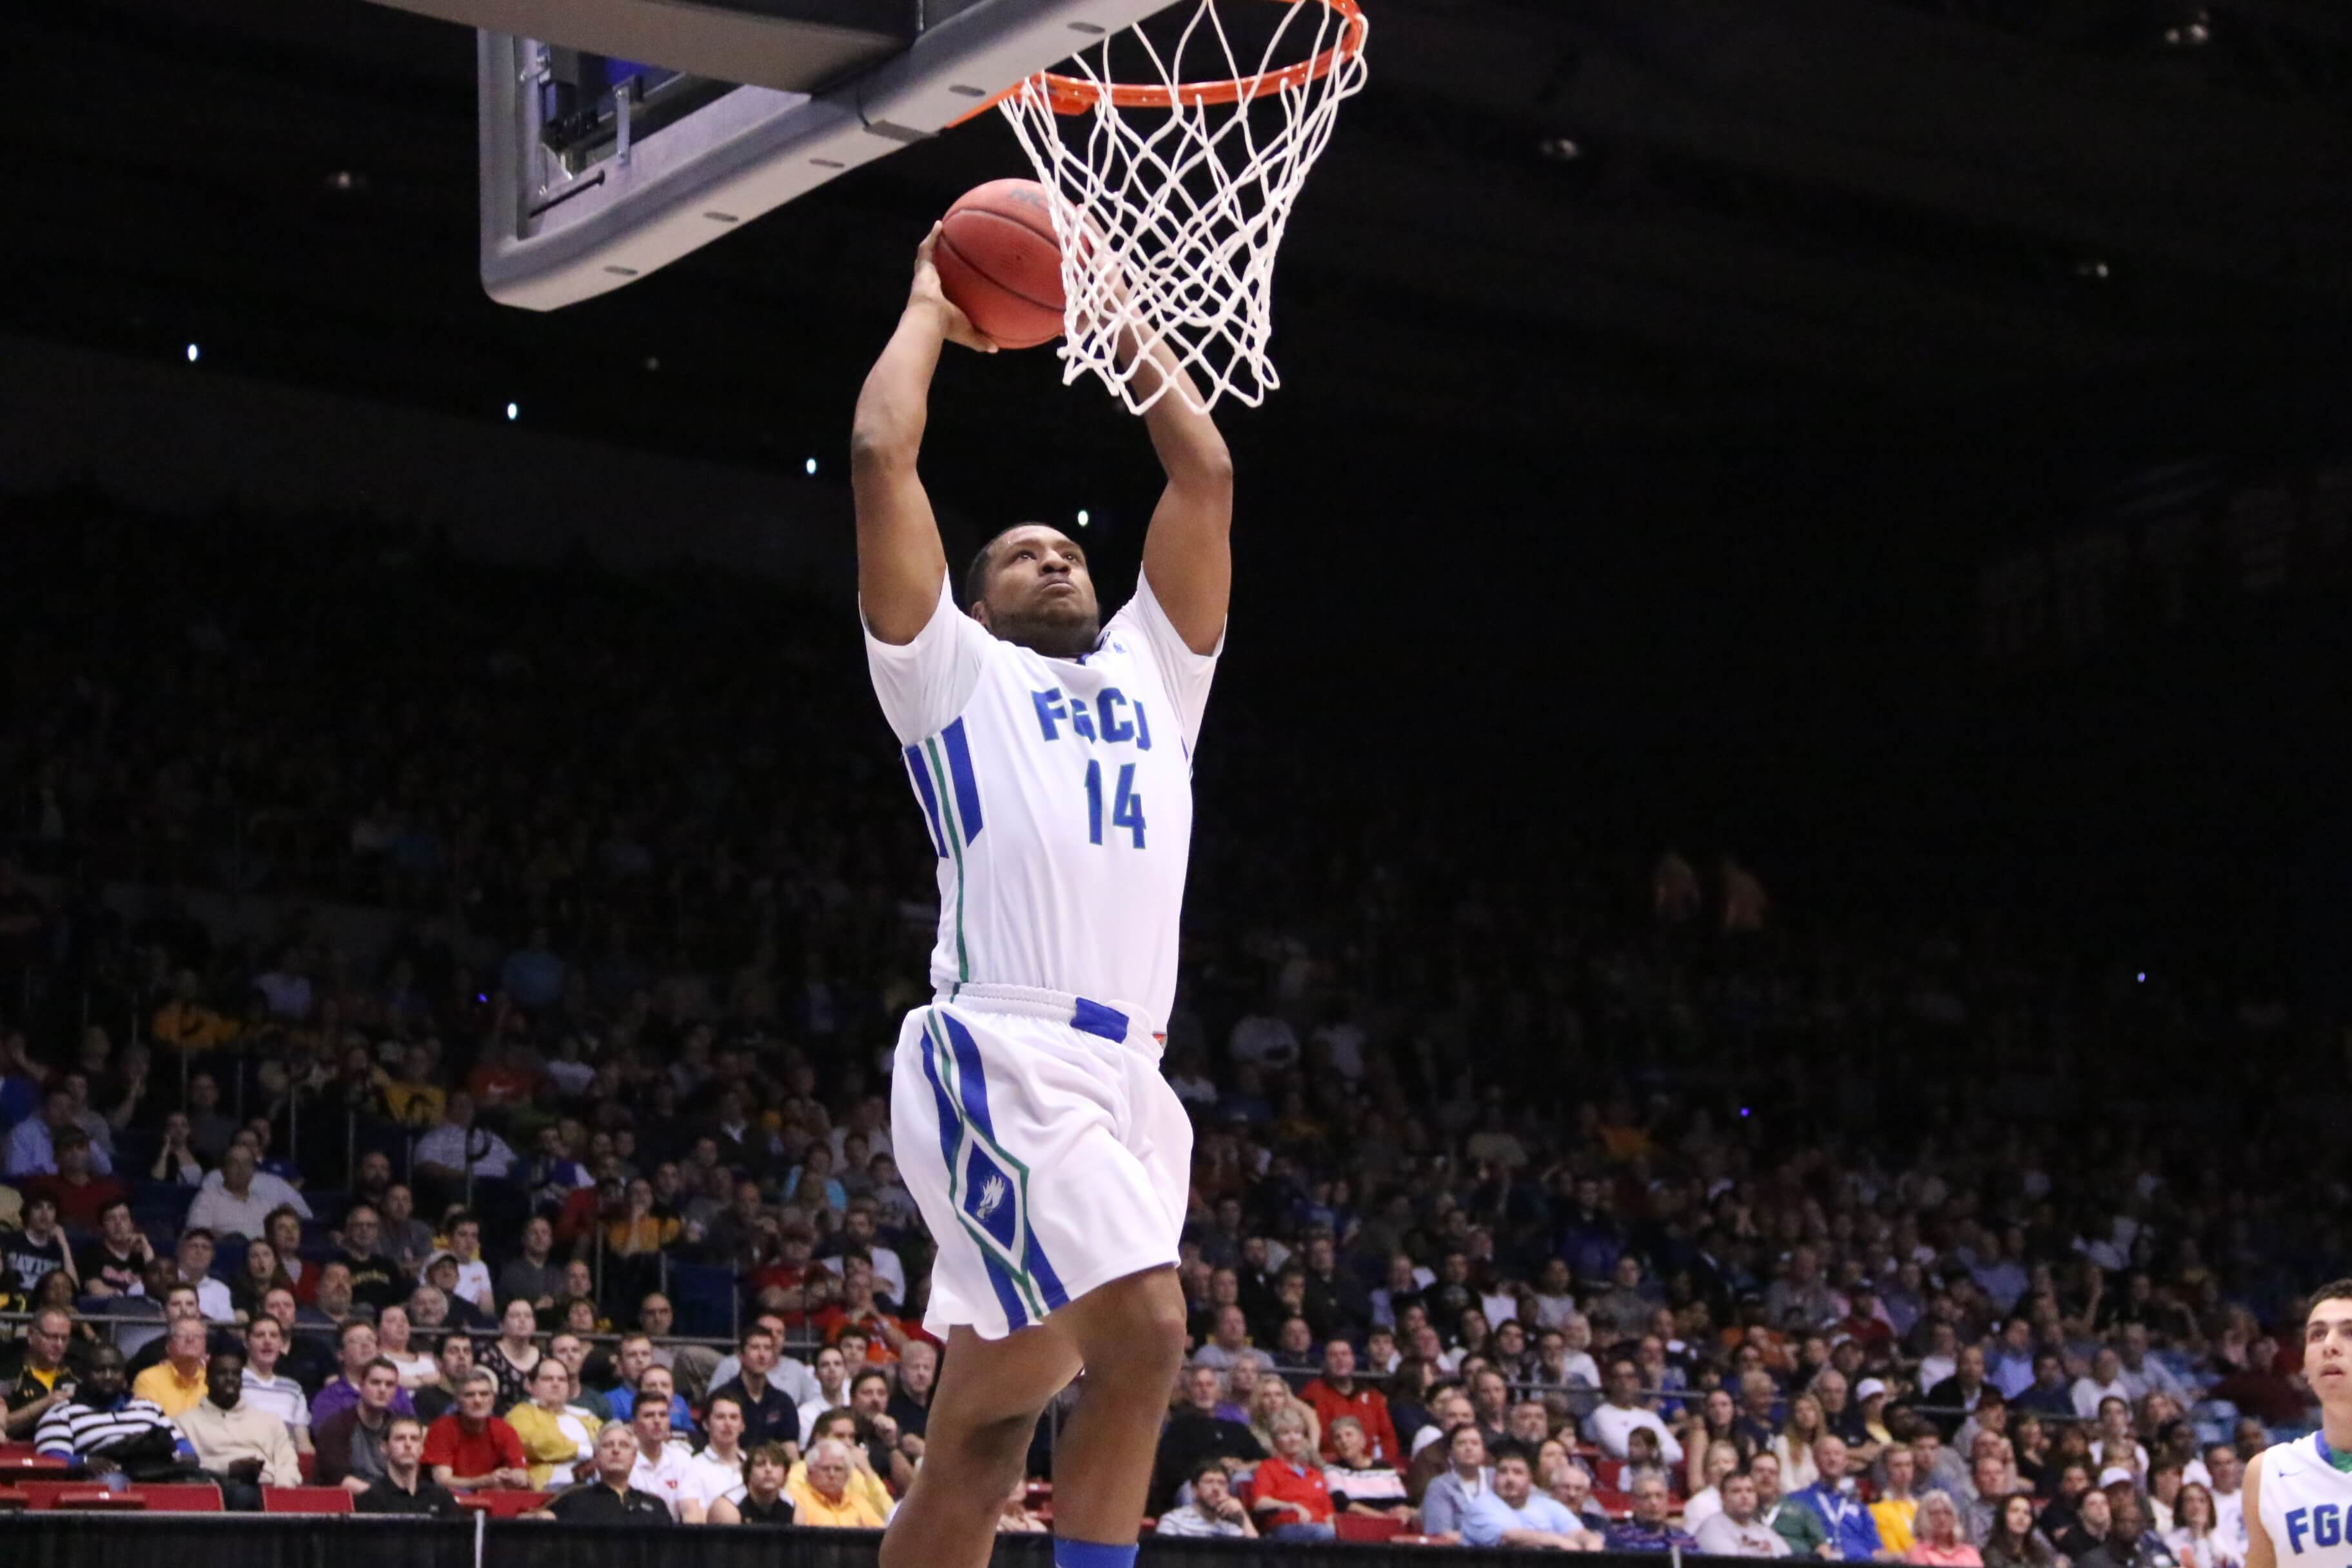 No. 16 FGCU to face No. 1 UNC in Second Round